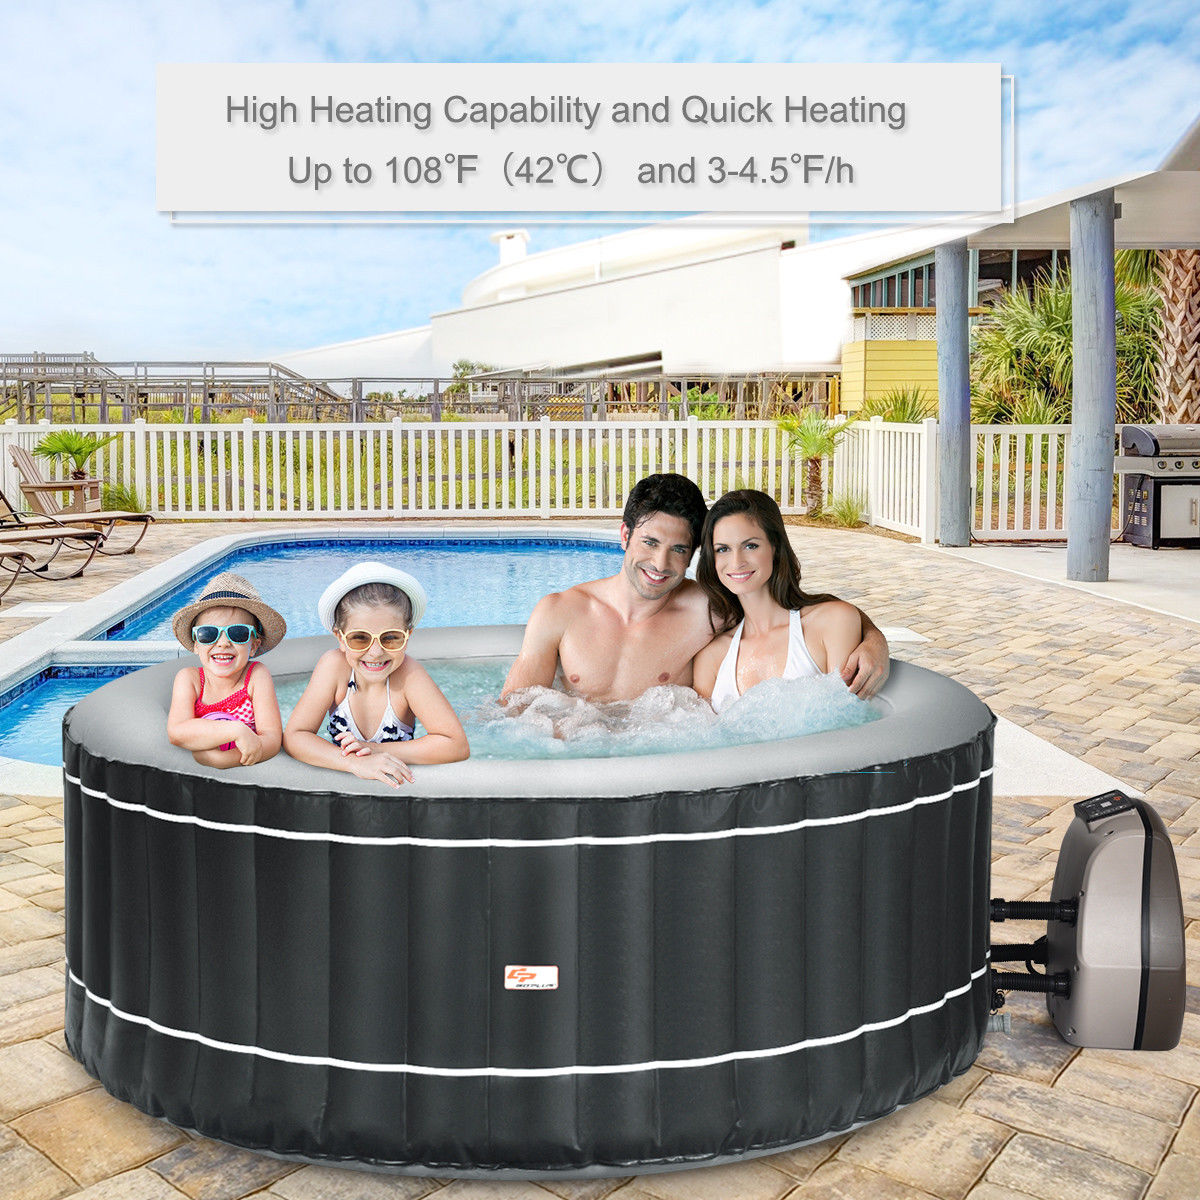 4-Person Inflatable Hot Tub Portable Outdoor Bubble Jet Leisure Massage Spa Gray - image 8 of 8